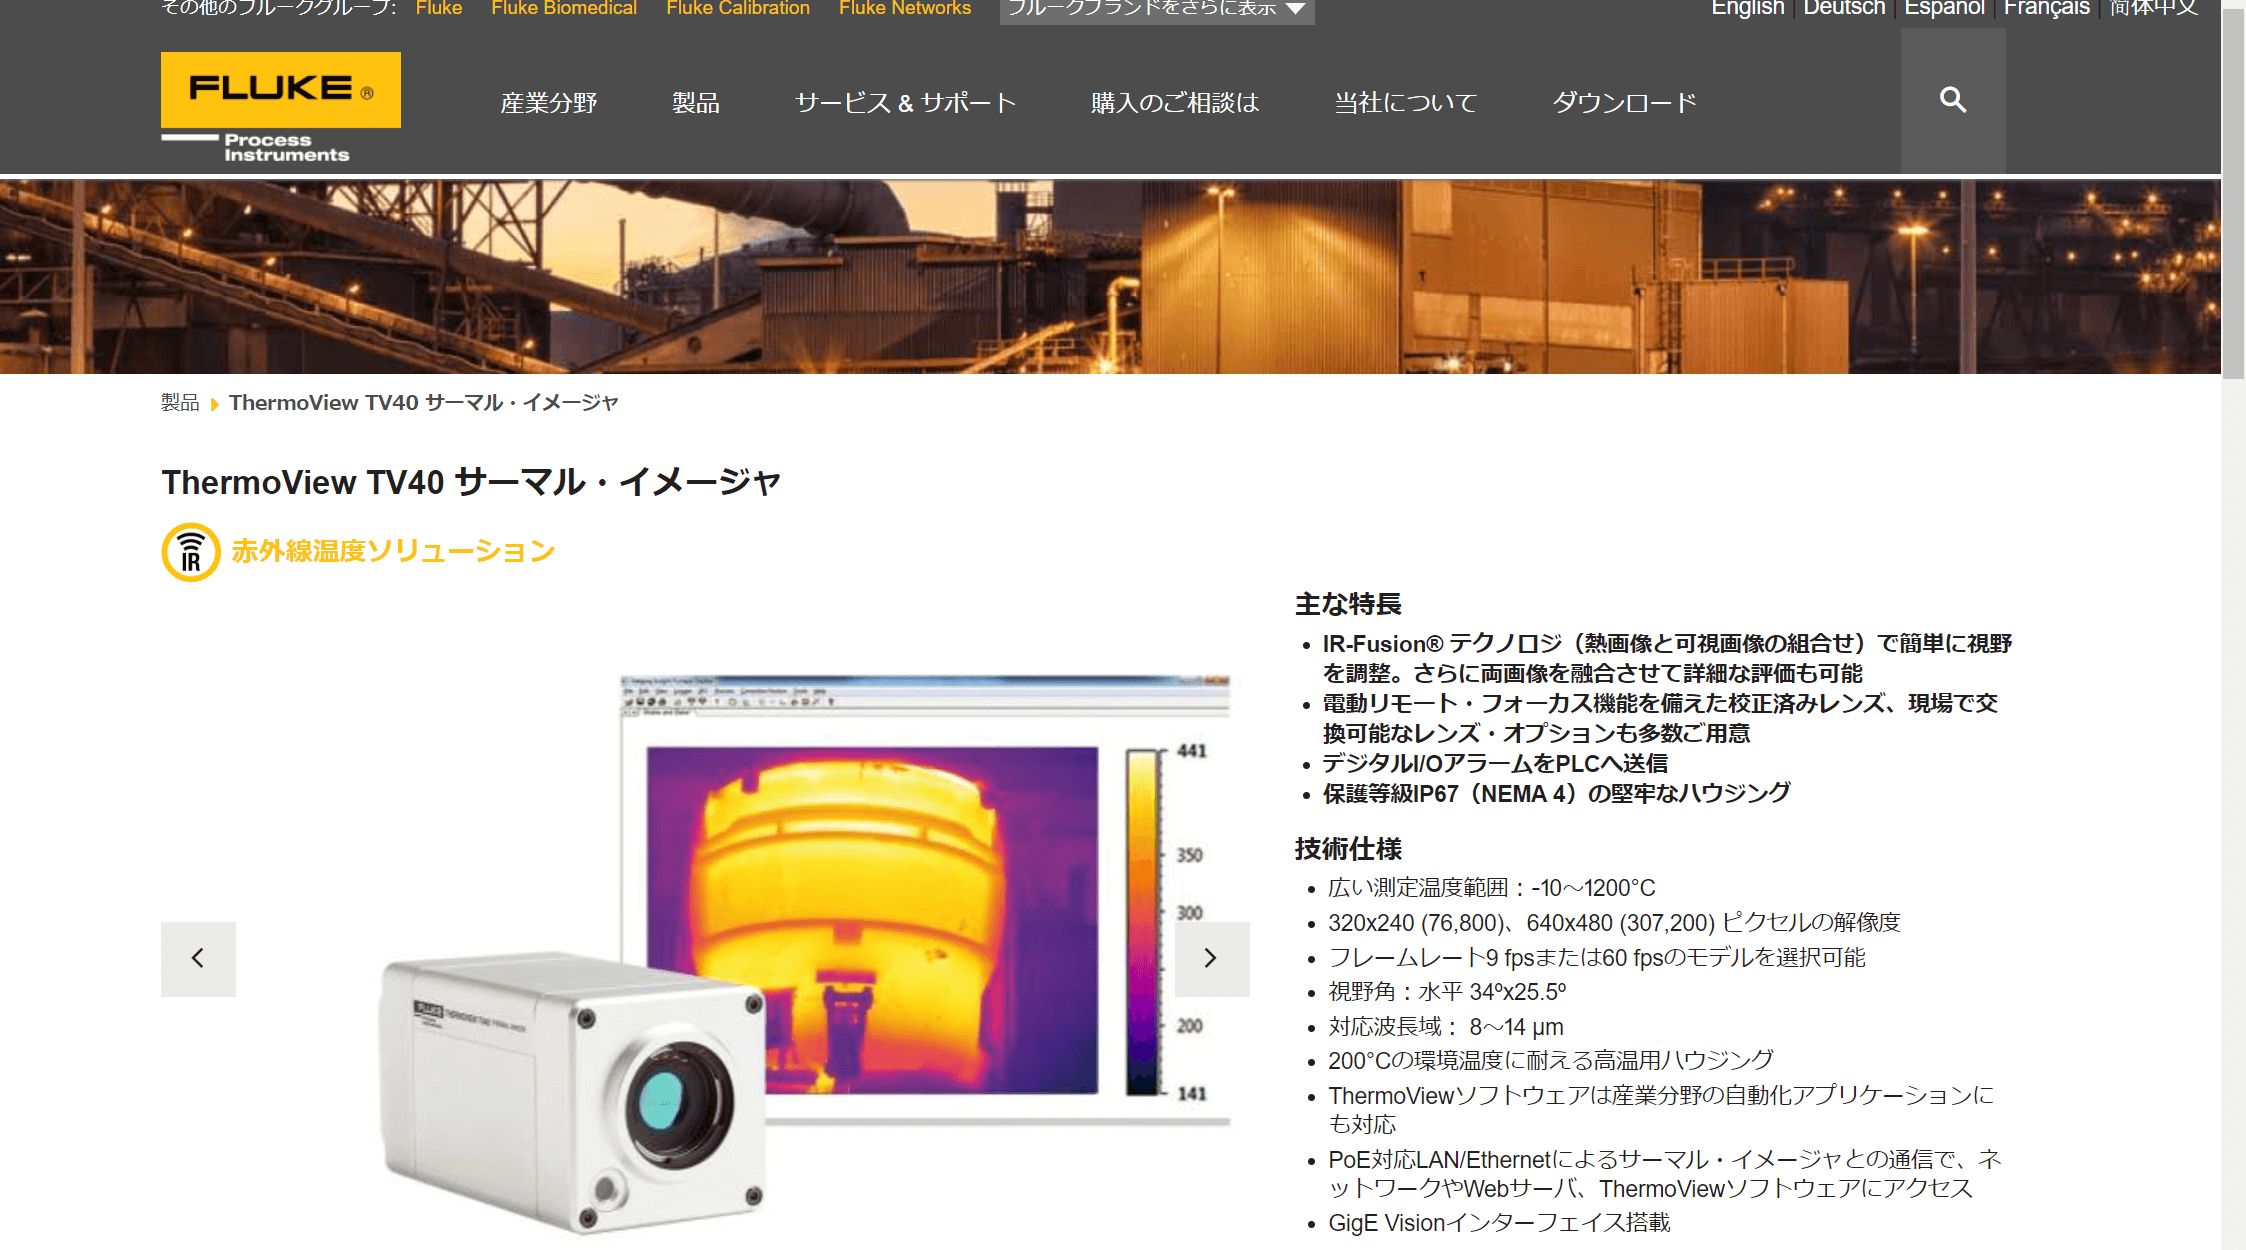 ThermoView TV40